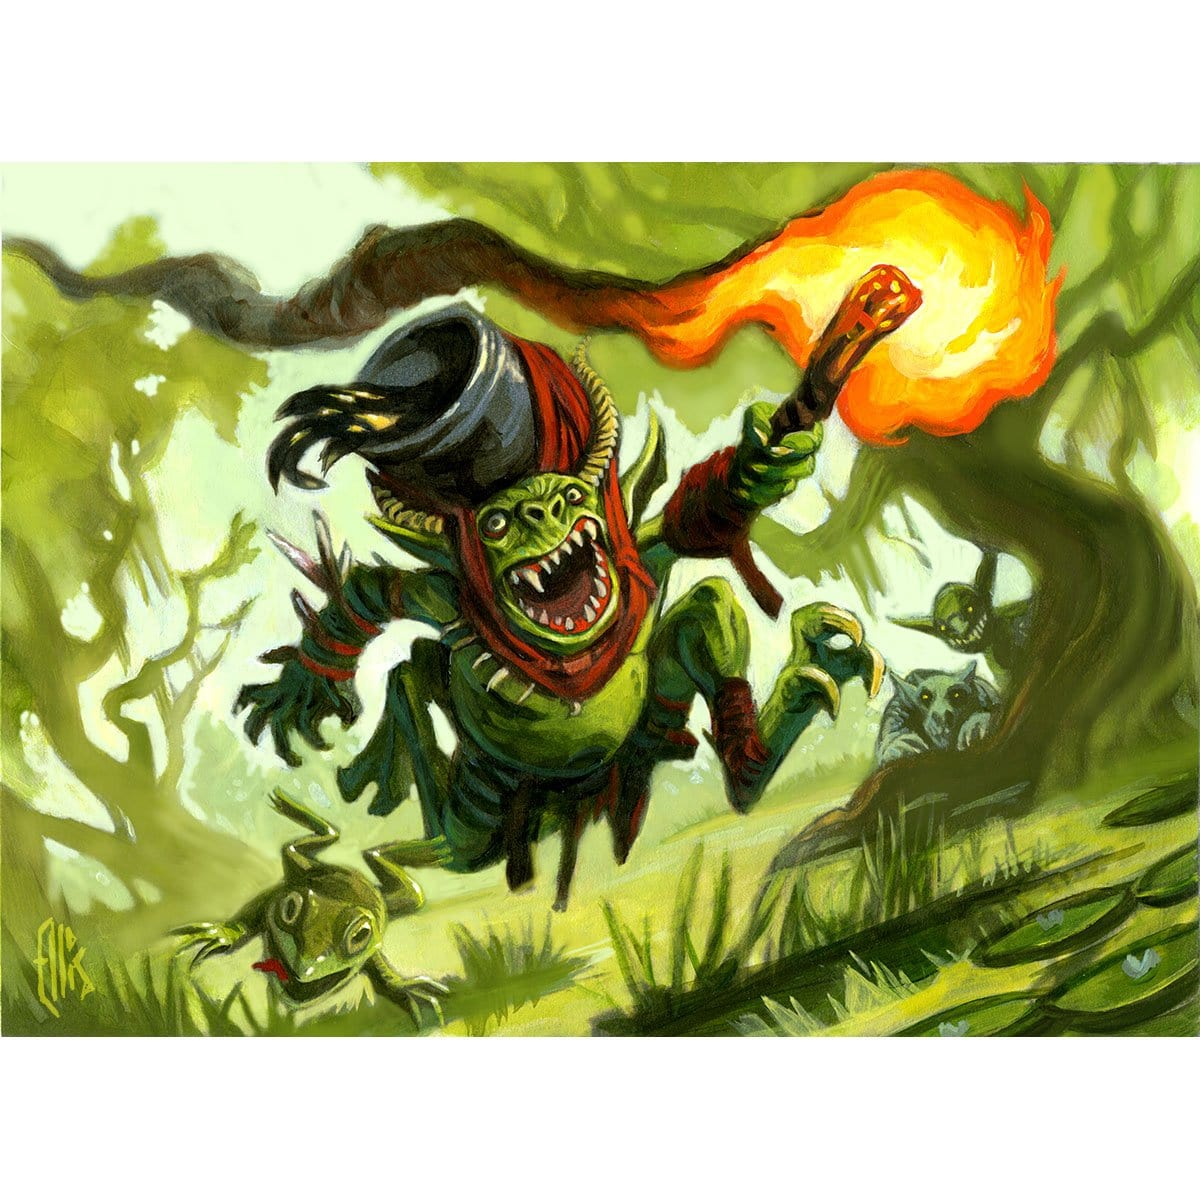 Mudbutton Torchrunner Print - Print - Original Magic Art - Accessories for Magic the Gathering and other card games